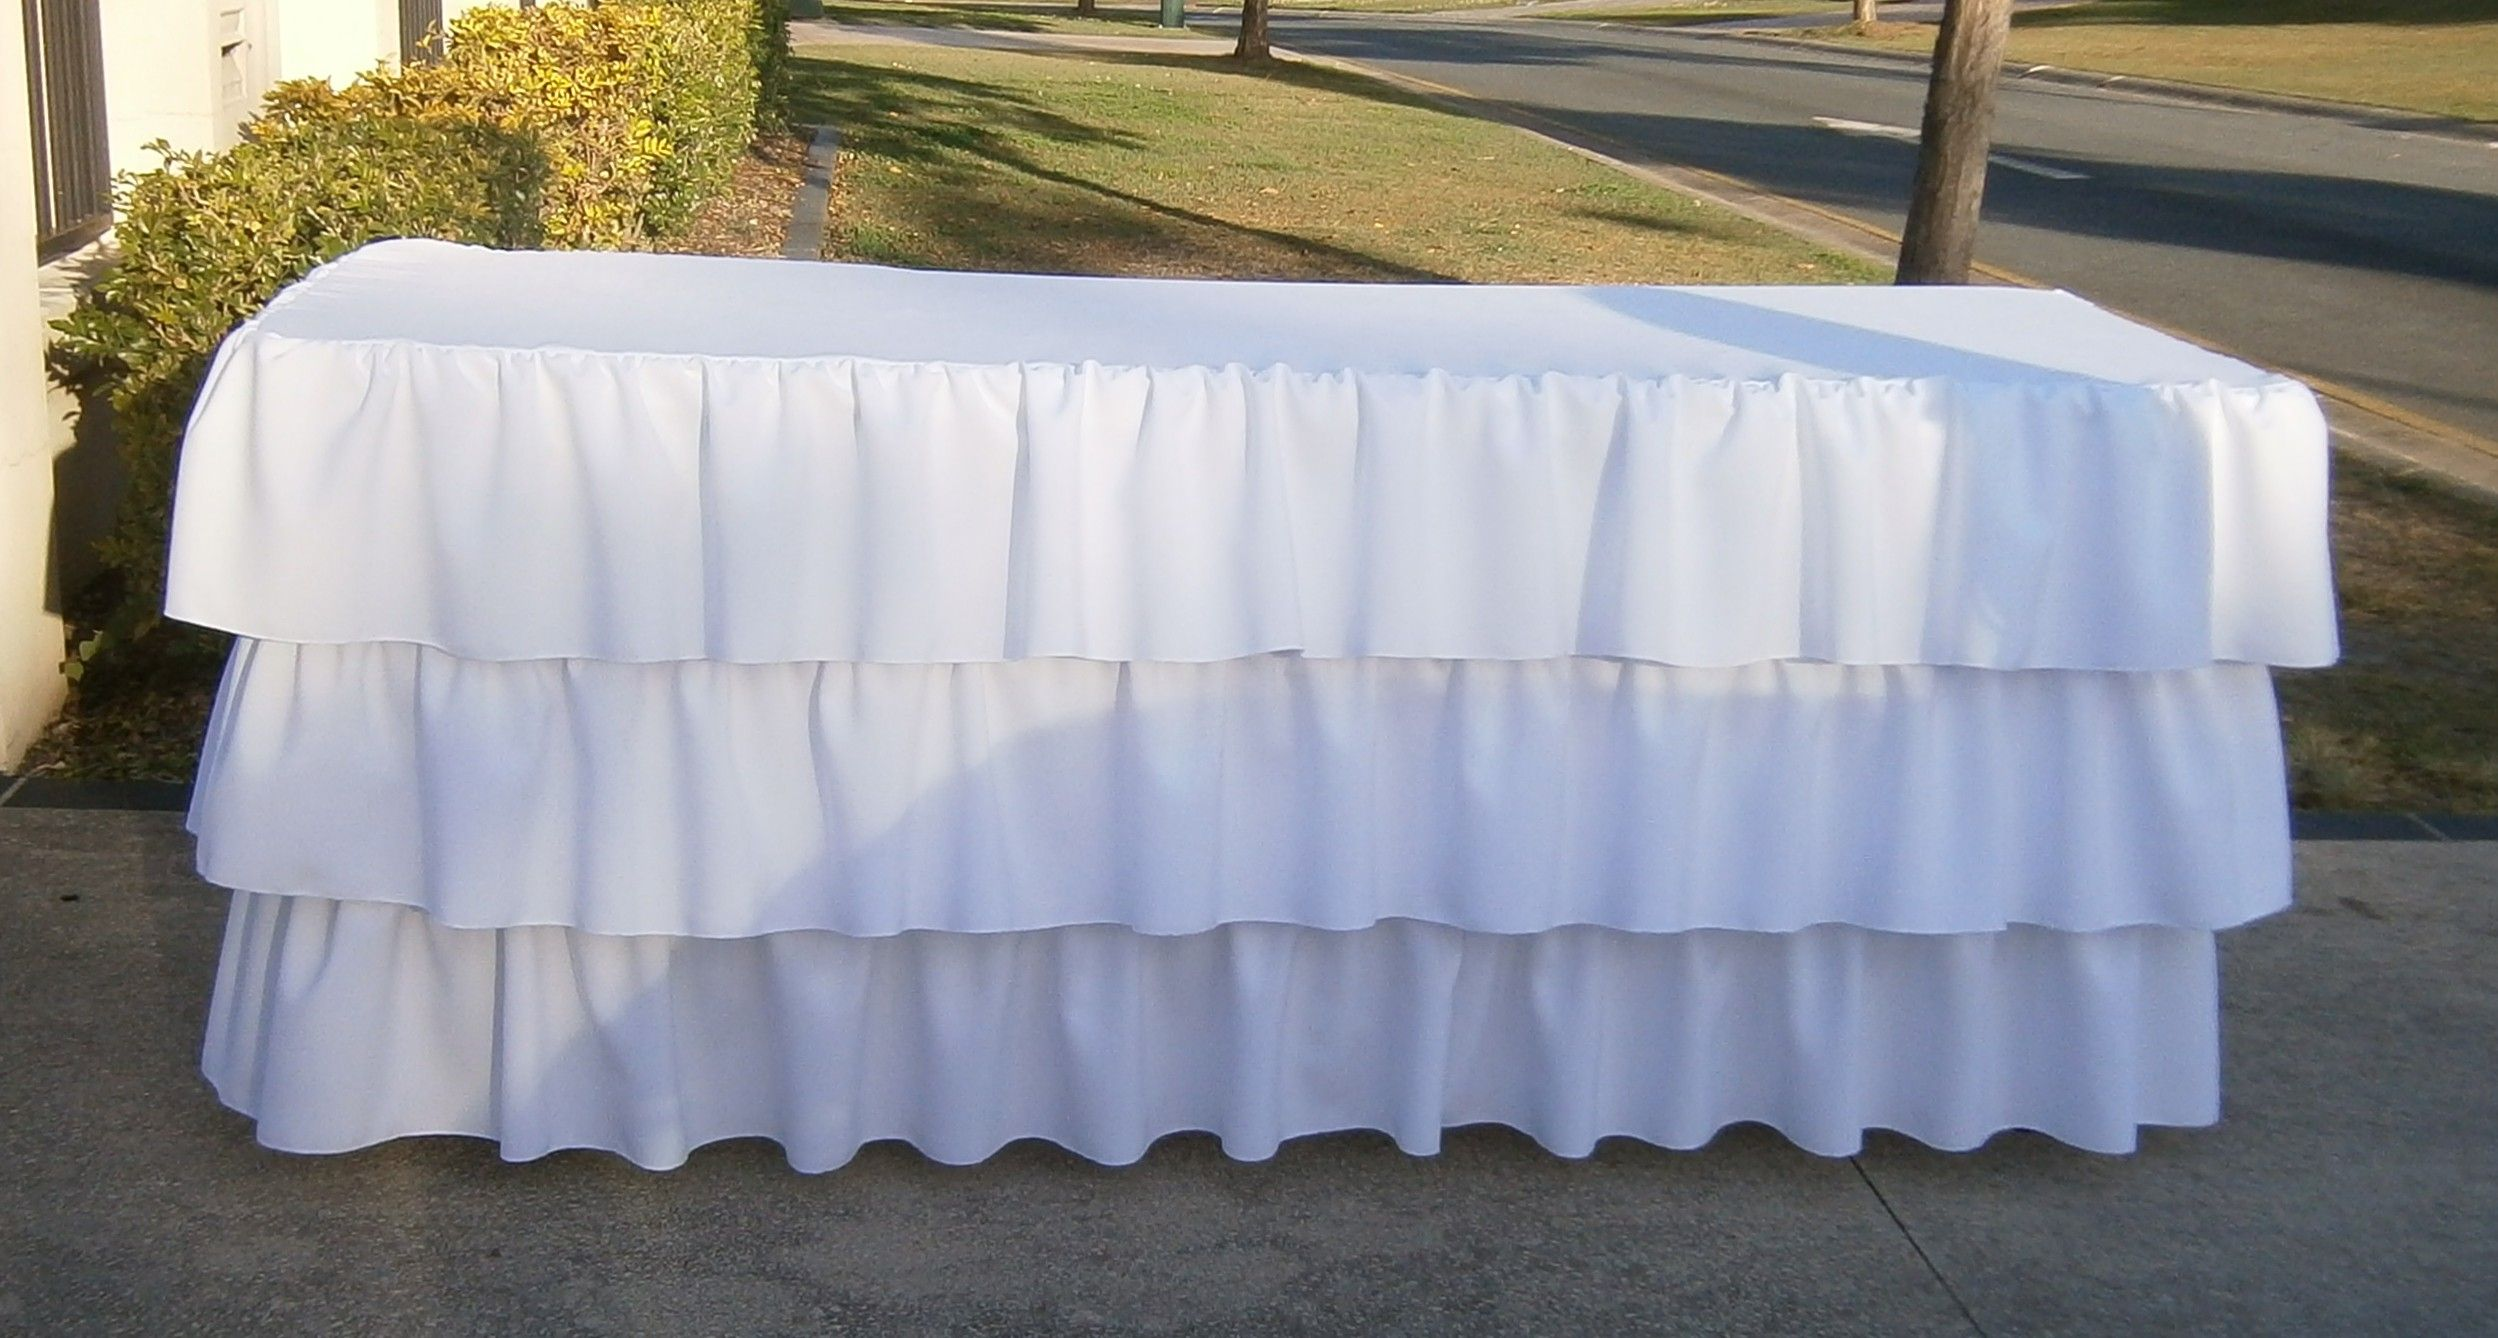 3 Tiered Ruffle Tablecloth   White From Www.sweetdesiresparties.com.au